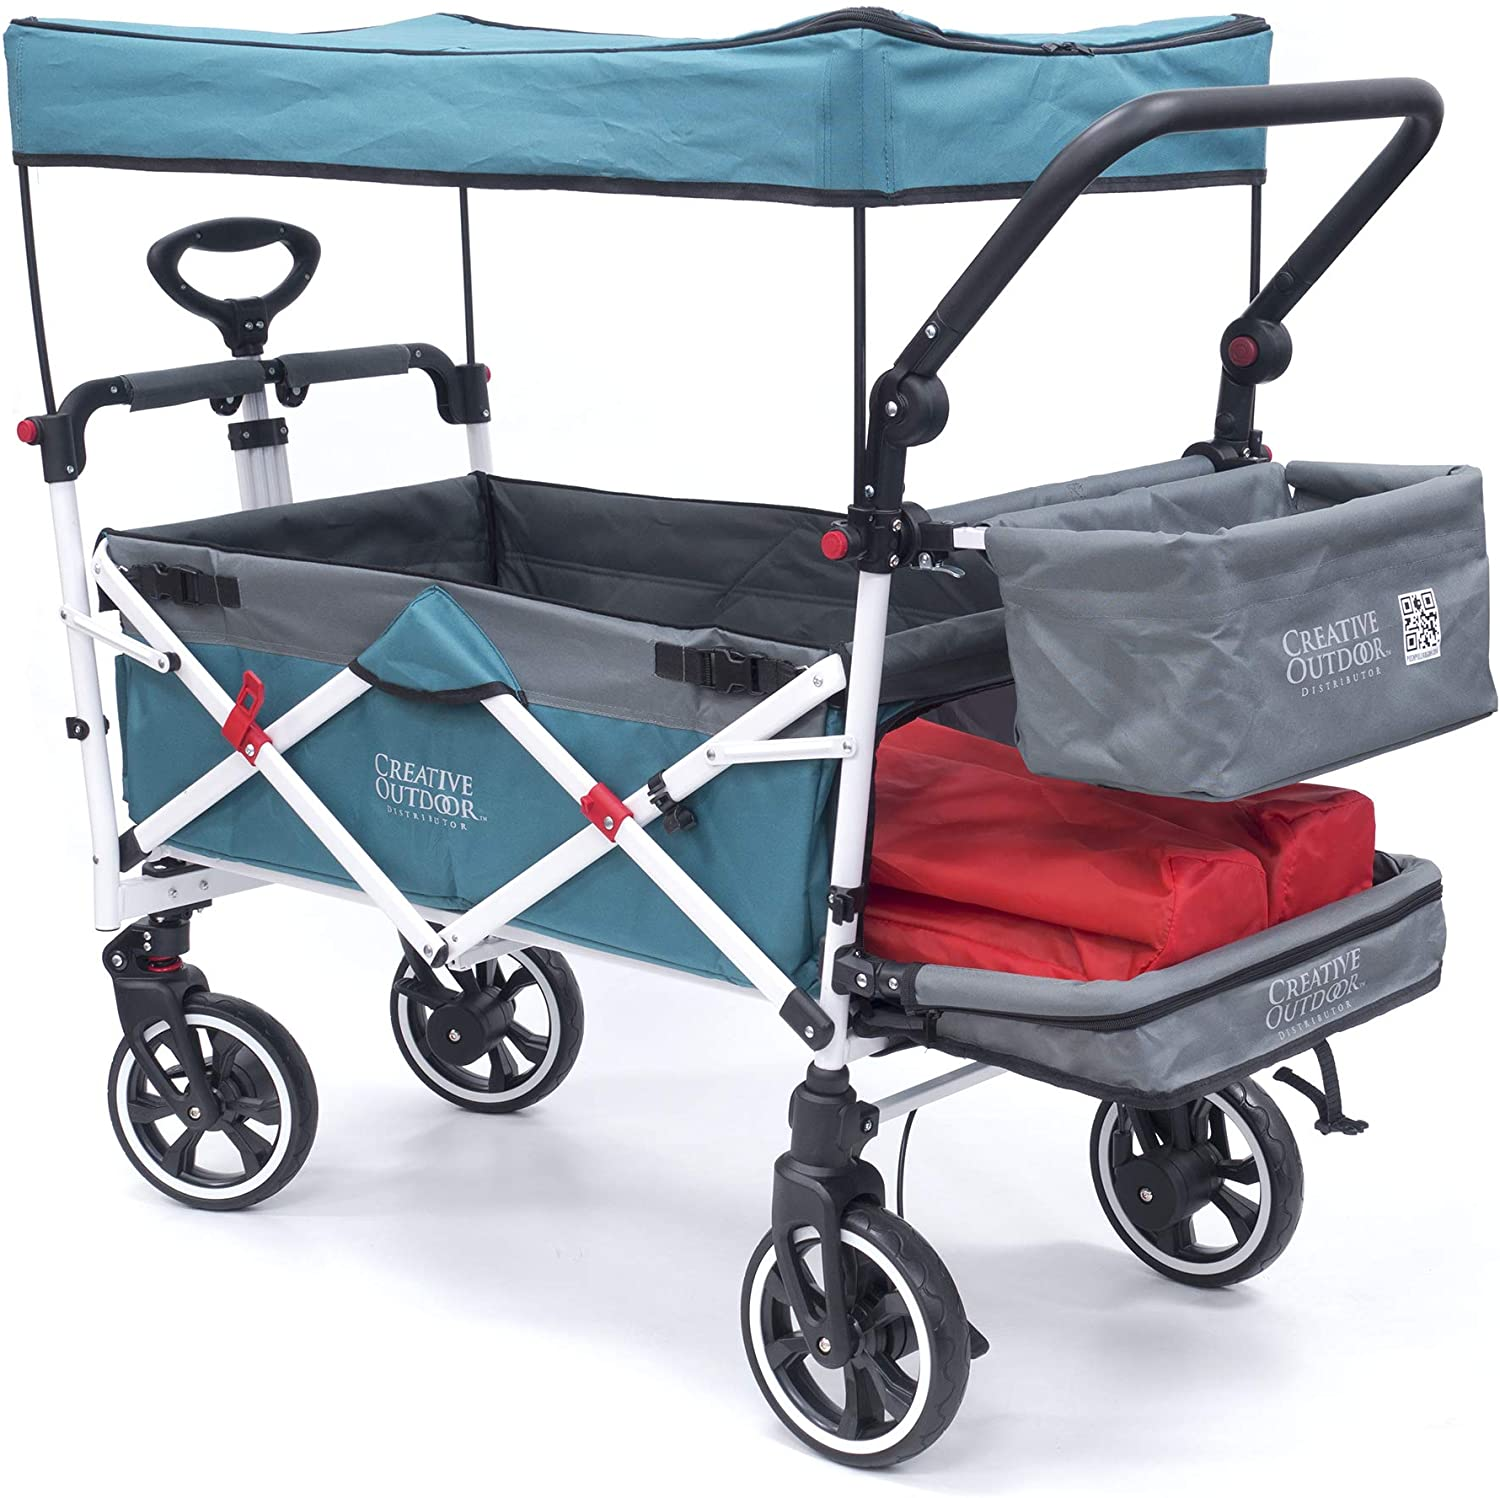 Creative Outdoor Push Pull Collapsible Folding Wagon Stroller Cart for Kids | Titanium Series | Beach Park Garden & Tailgate (Teal)""